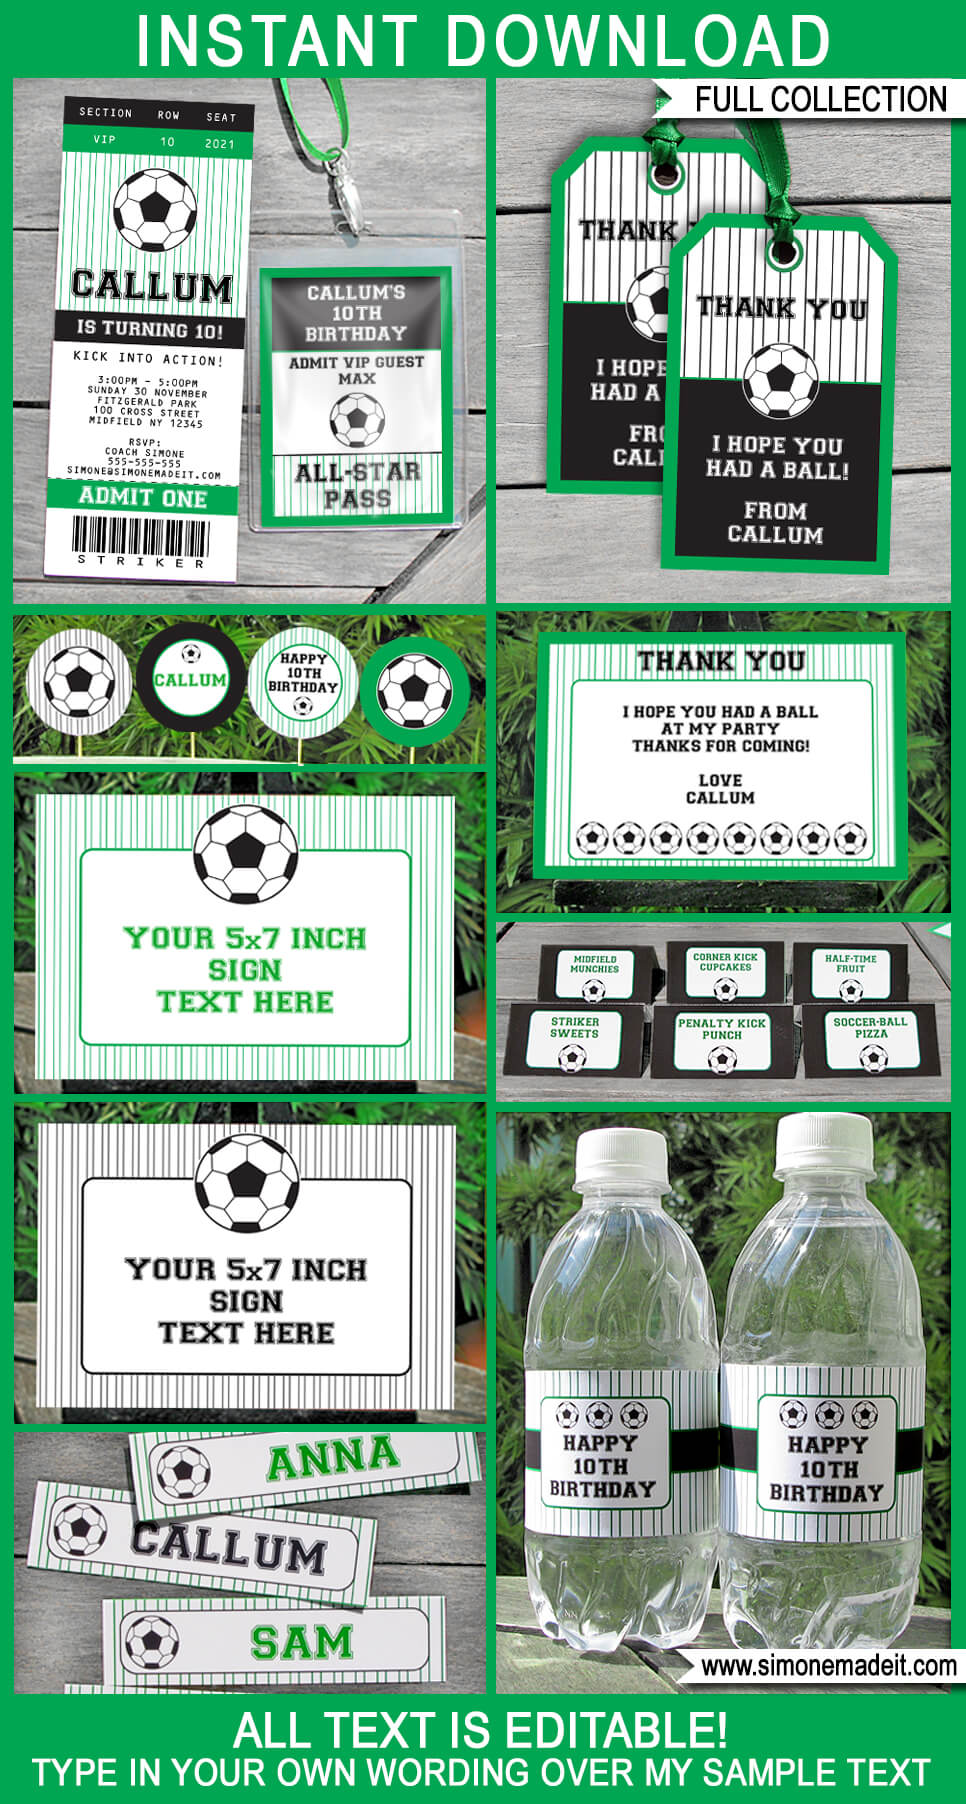 Soccer Party Printables, Invitations & Decorations | Editable Birthday Party Theme Templates | INSTANT DOWNLOAD $12.50 via SIMONEmadeit.com